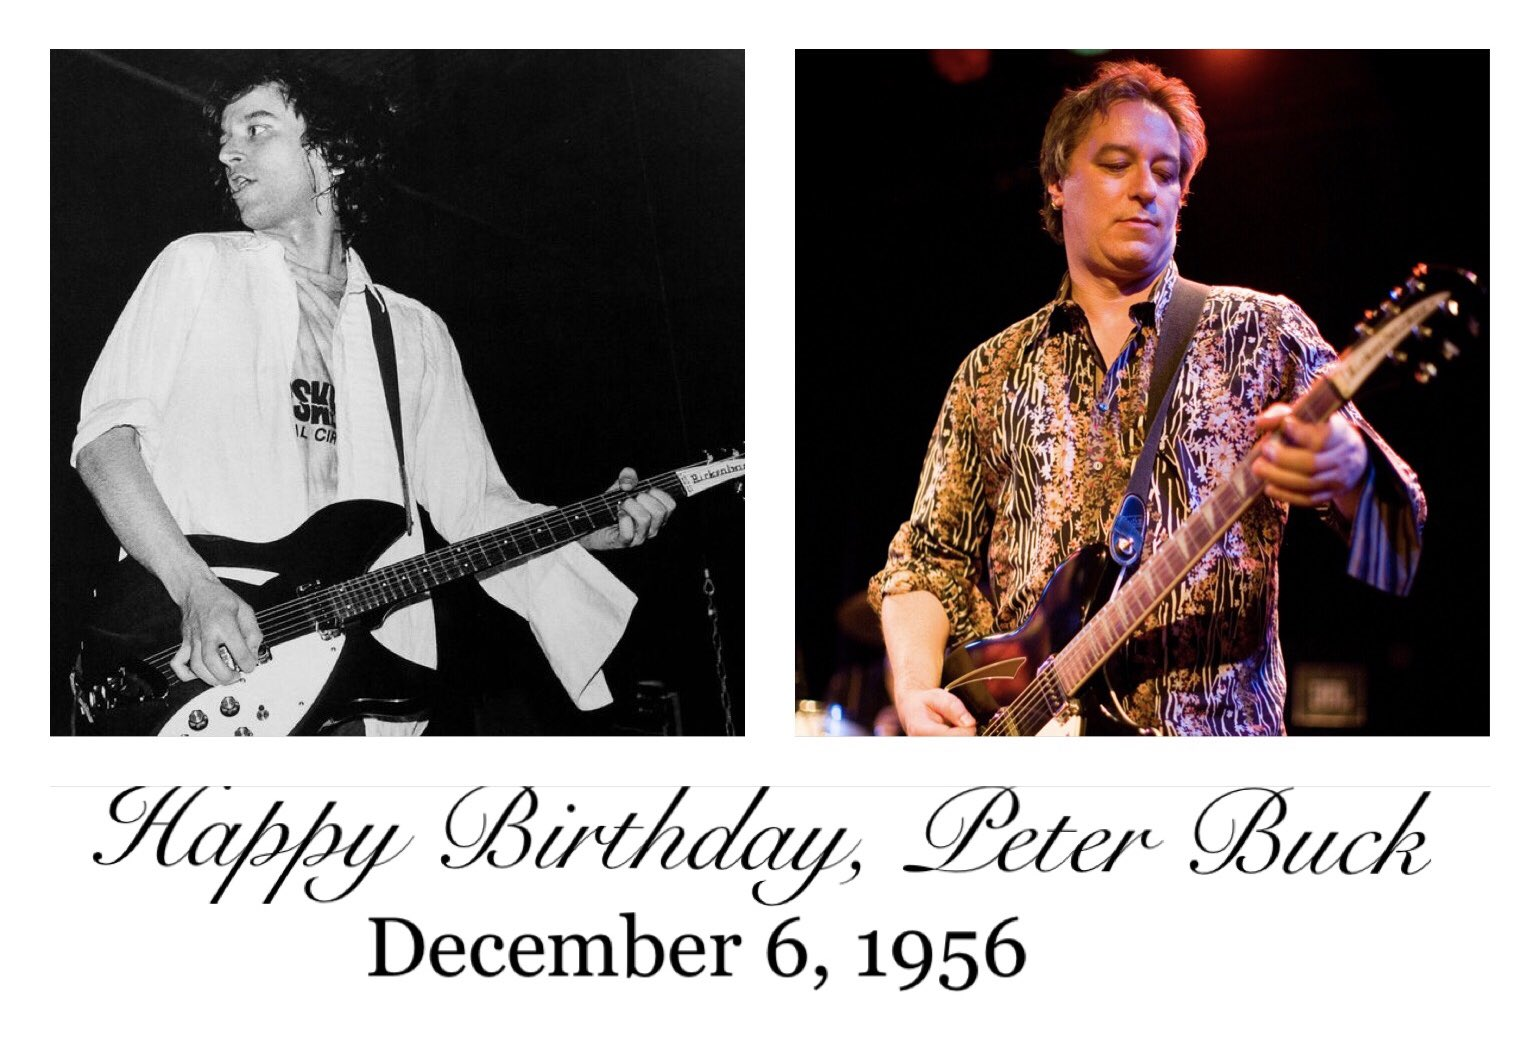 Happy birthday, Peter Buck!